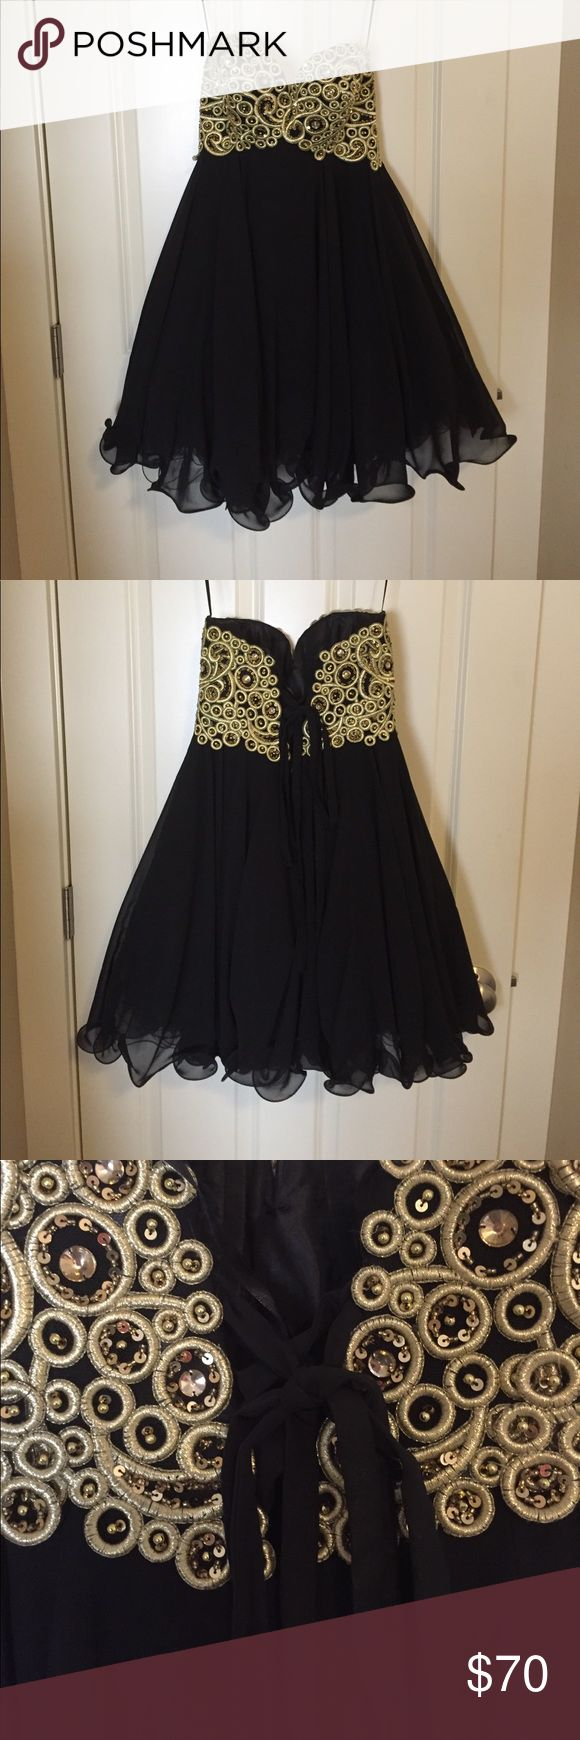 ❤️FP❤️ Short Black and Gold Prom/Homecoming Dress Be the belle of the ball in this gorgeous dress! All gold jewels and sequins are intact, this dress was only worn a few times. Features a corset lace up in the back, this does not come with the piece of black fabric for the corset, meaning that your skin will show when it is laced up. Does come with the black lace up tie. Bundle to save even more! Let me know if you have any questions, happy poshing ❤️ Dresses Prom